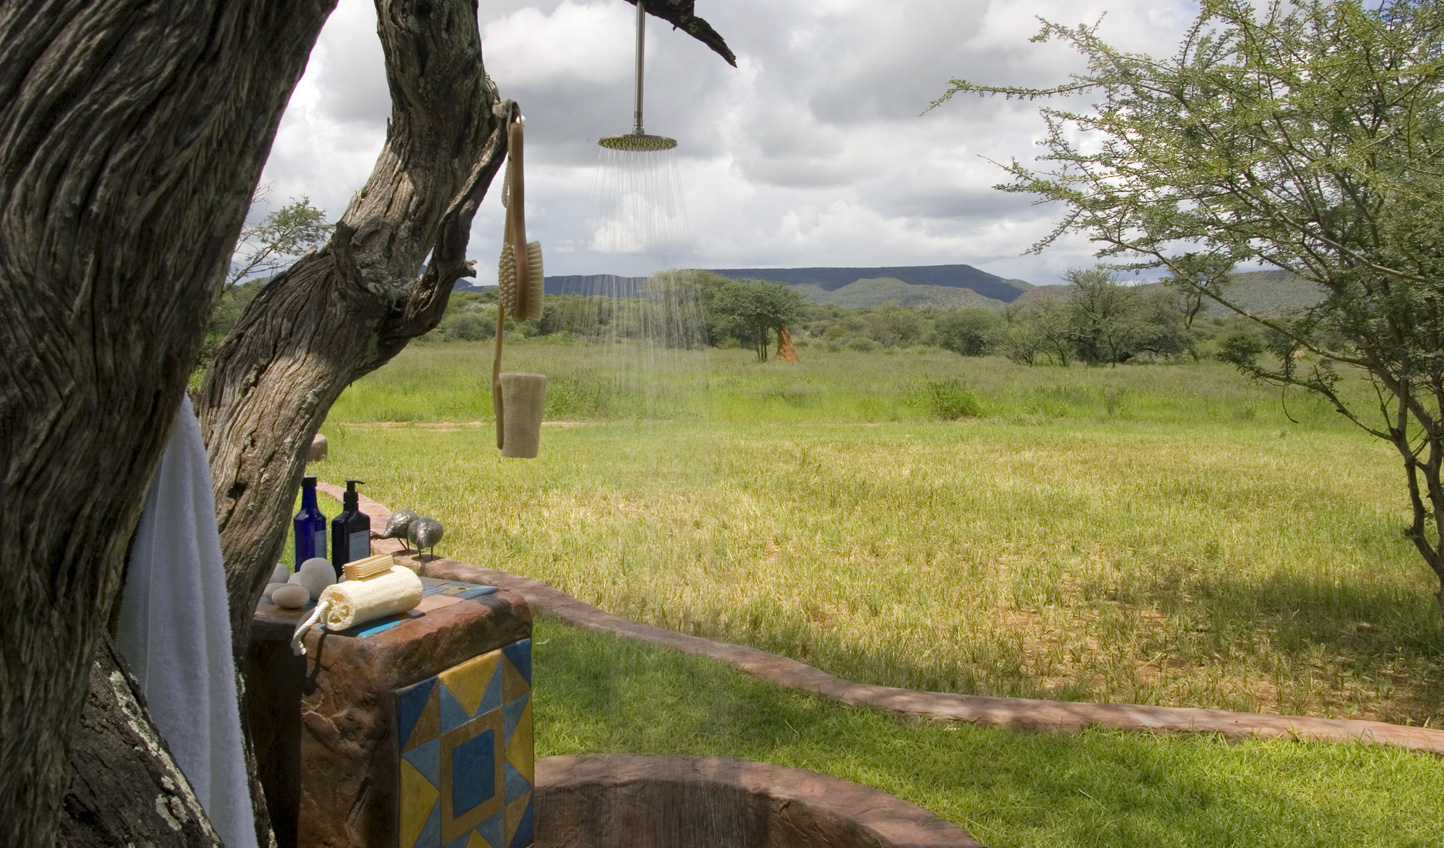 Shower out amid the wilds of Africa